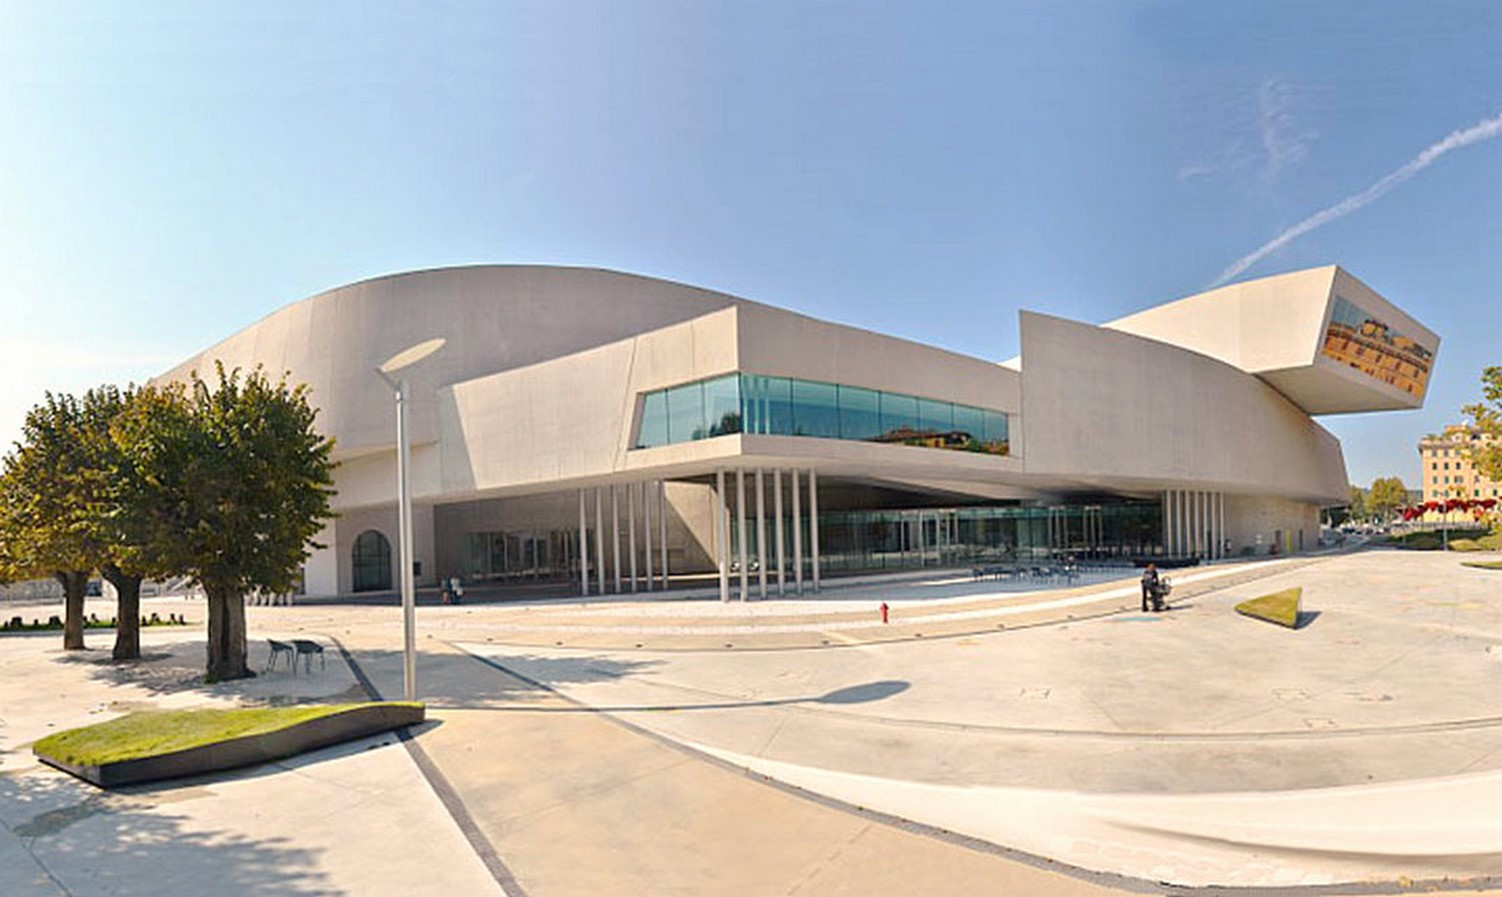 MAXXI - National Museum of 21st Century Art by Zaha Hadid: Continuity of spaces - Sheet1